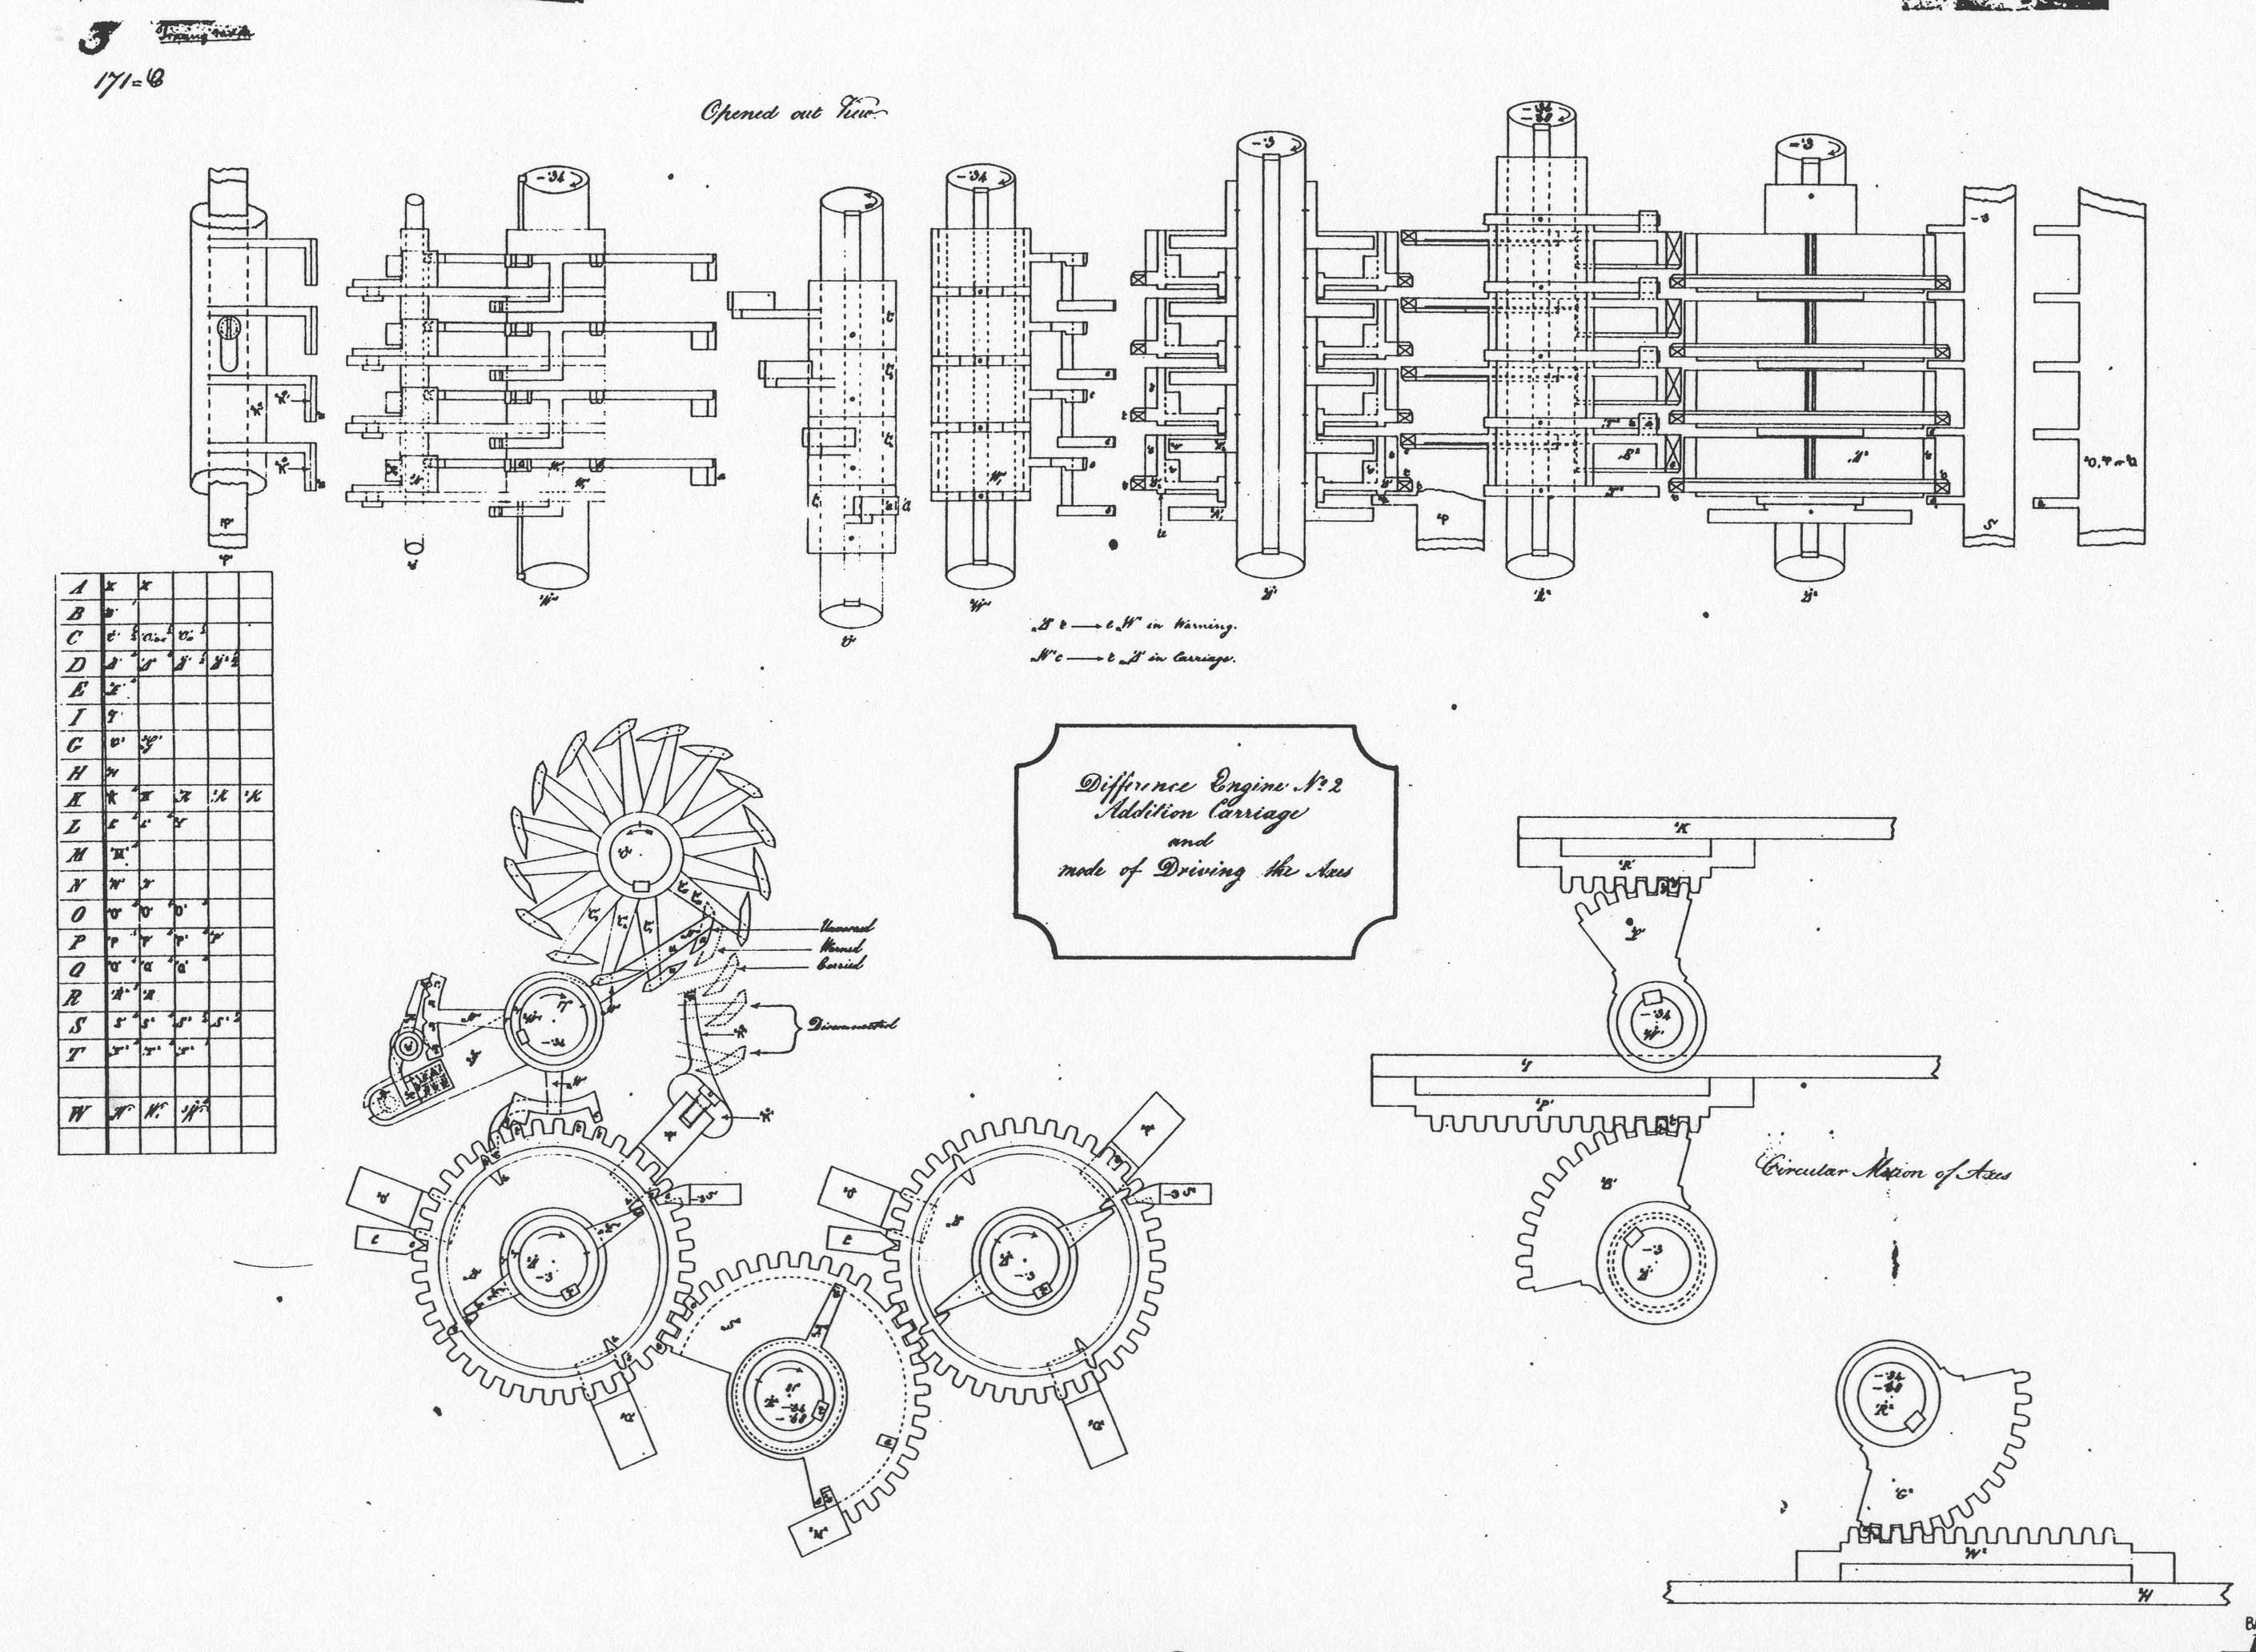 [SCHEMATICS_4ER]  F414 Engine Labeled Diagram. tf 33 turbofan engine diagram. f414 engine  diagram wiring diagram database. honda gcv160 parts diagram flywheel under.  100 ge general electric f118 engine diagram. f103 cf6. sa could | F414 Engine Diagram |  | A.2002-acura-tl-radio.info. All Rights Reserved.